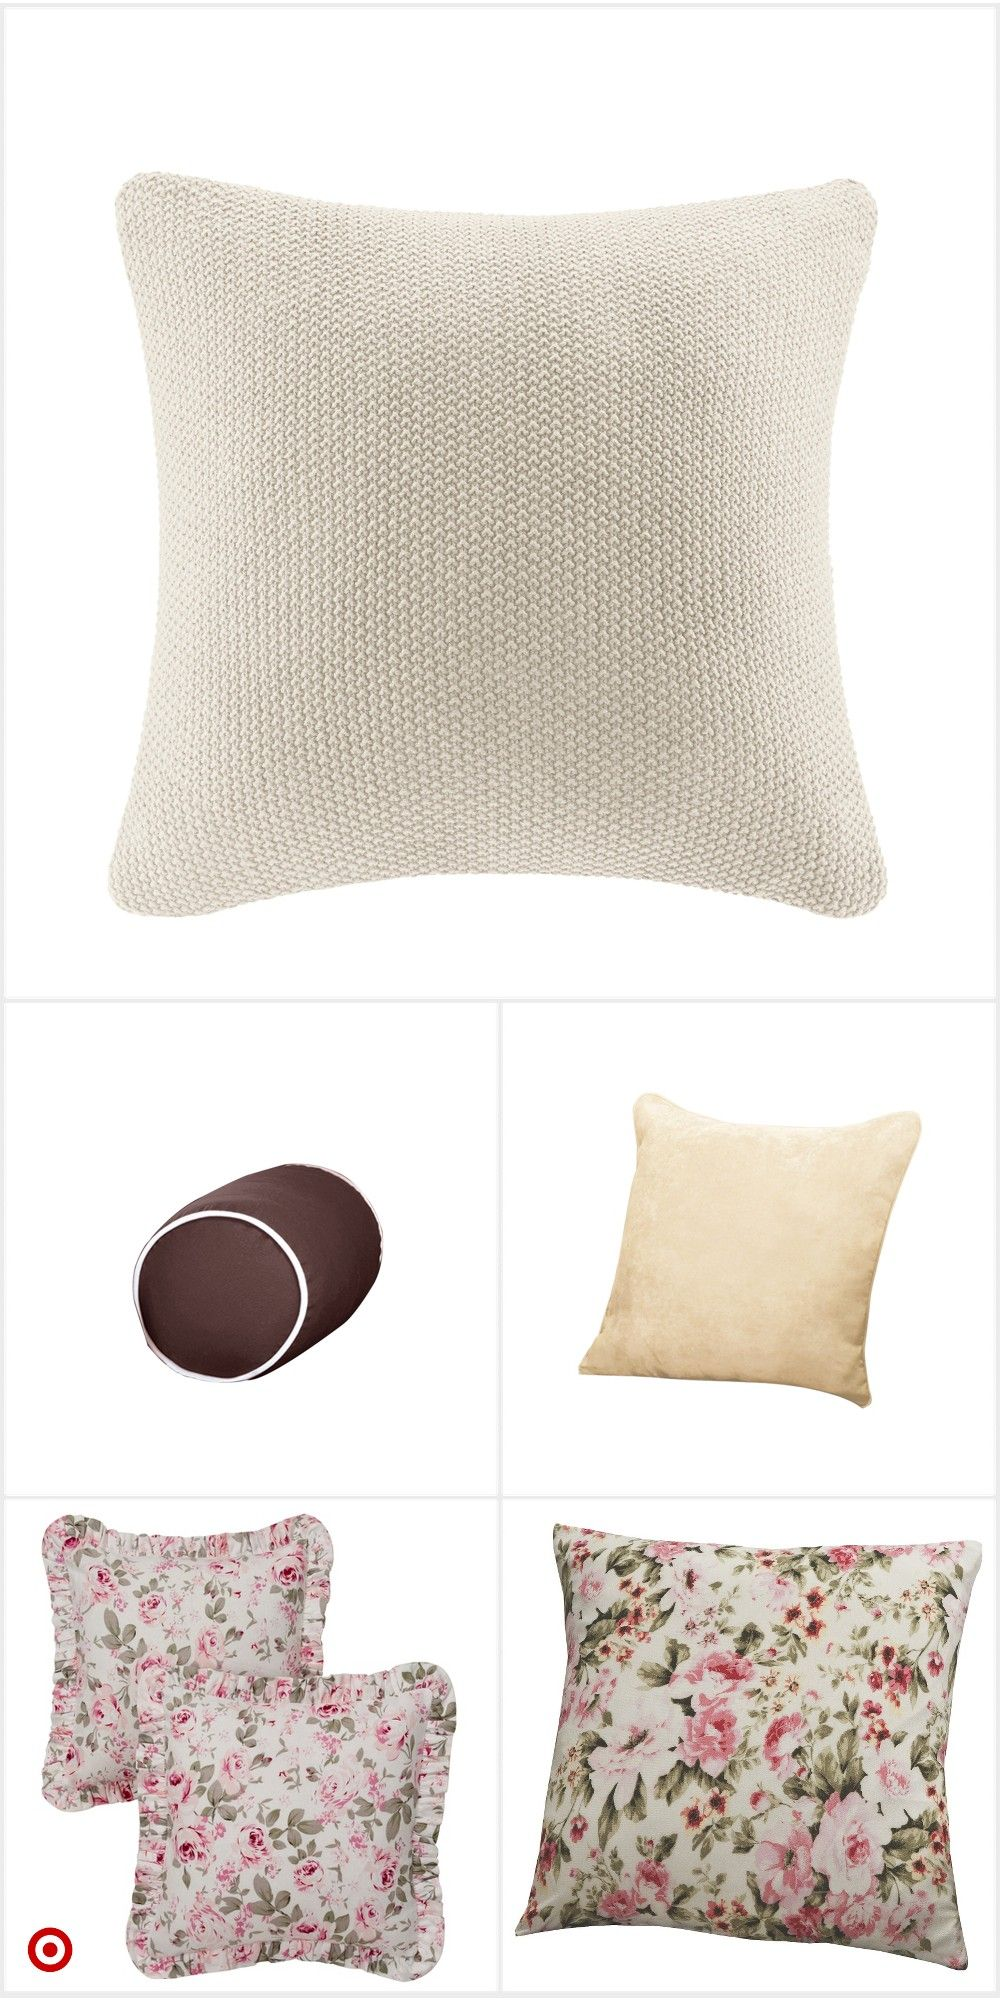 Shop Target for decorative pillow cover you will love at